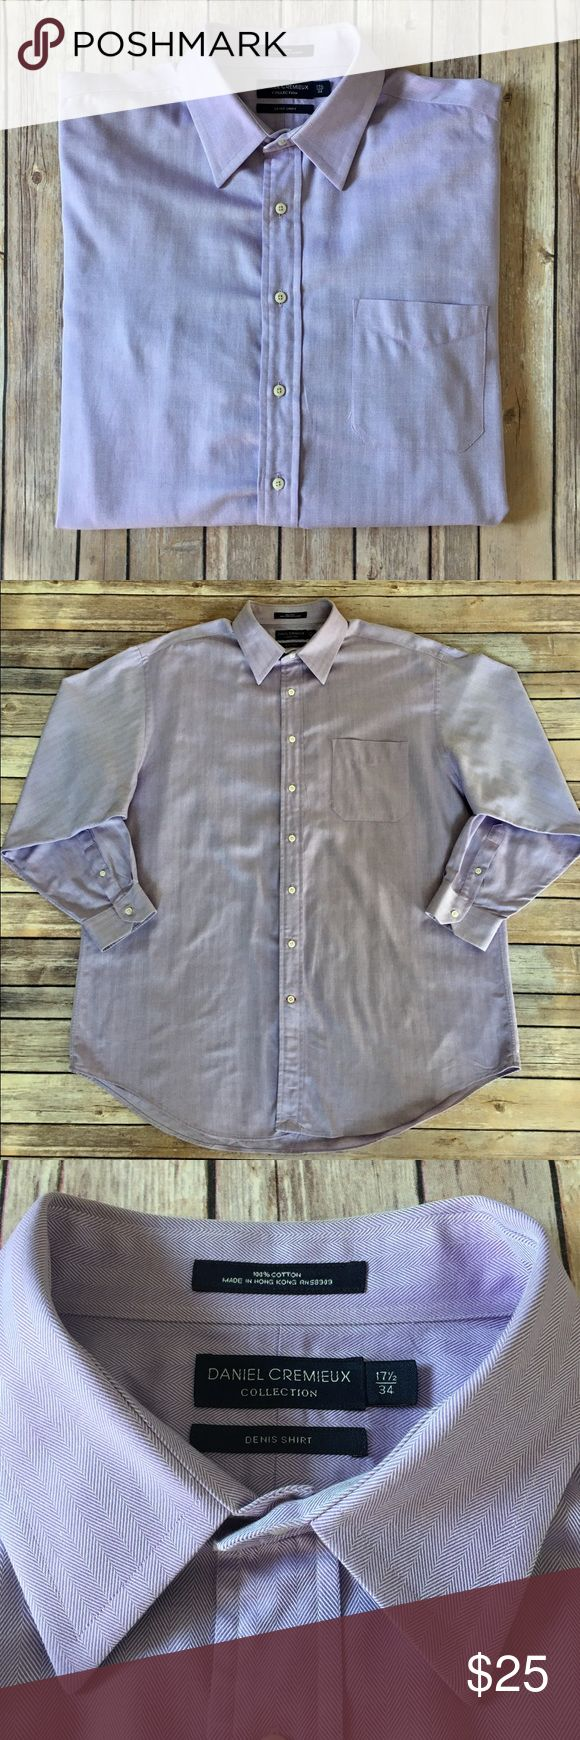 Daniel Cremieux - Long Sleeved Dress Shirt Daniel Cremieux - (Dennis Shirt), Long Sleeved Button Down, Light Purple Dress Shirt (size 17.5x34). In exceptional preowned condition. Please be sure to check out all of my other men's items to bundle and save. Same day or next business day shipping is guaranteed. Reasonable offers will be considered. Daniel Cremieux Shirts Dress Shirts